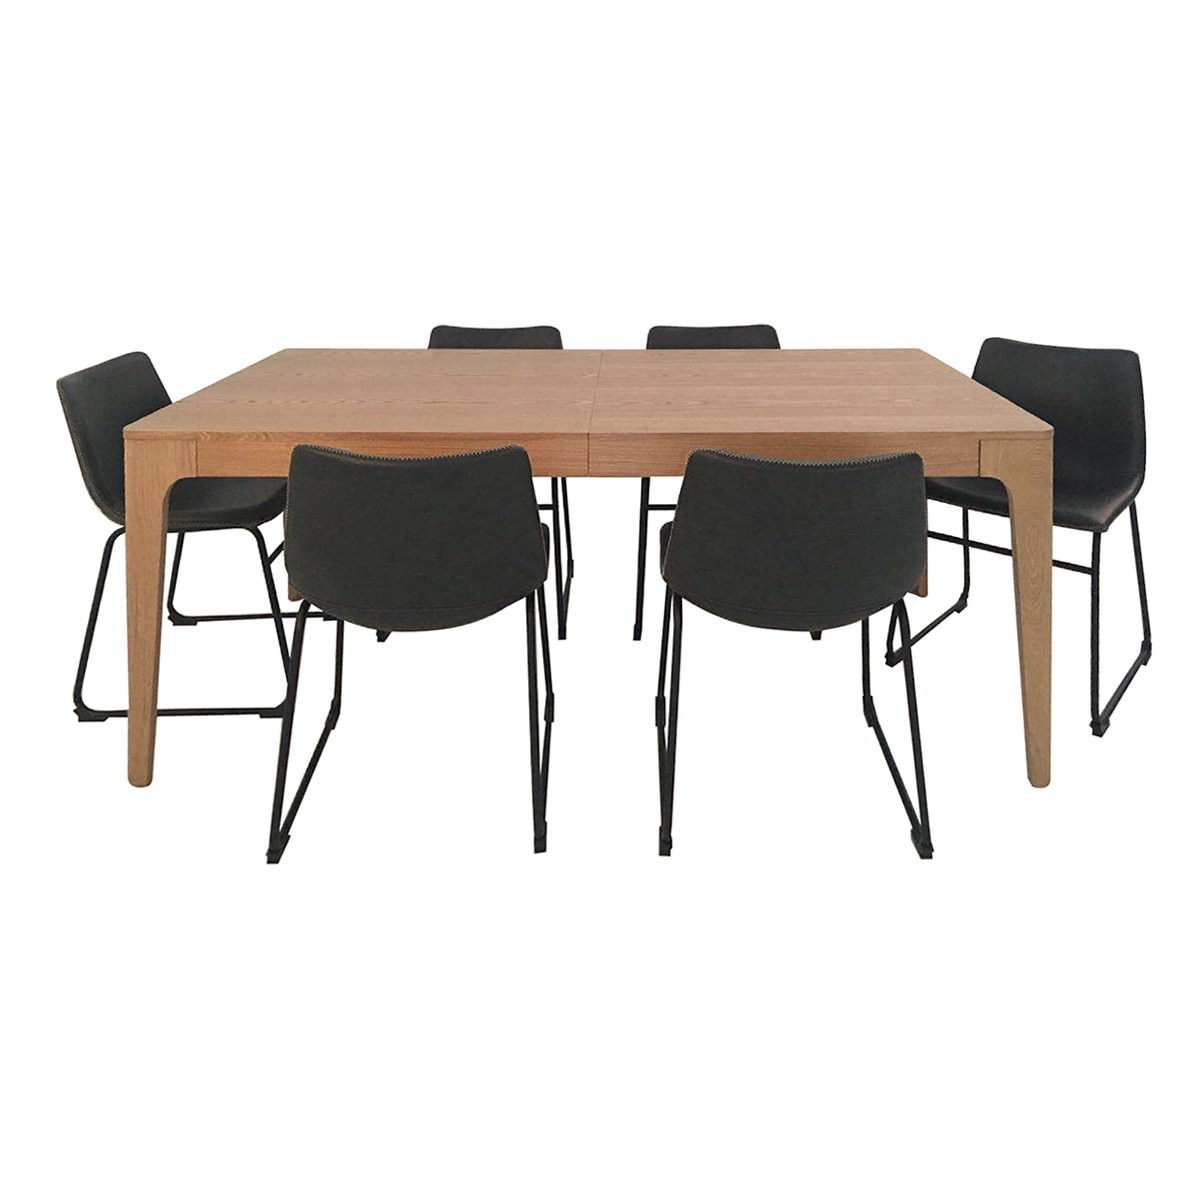 Dario 7 Piece Timber Extendable Dining Chair, 180-240cm, with Perry Chair